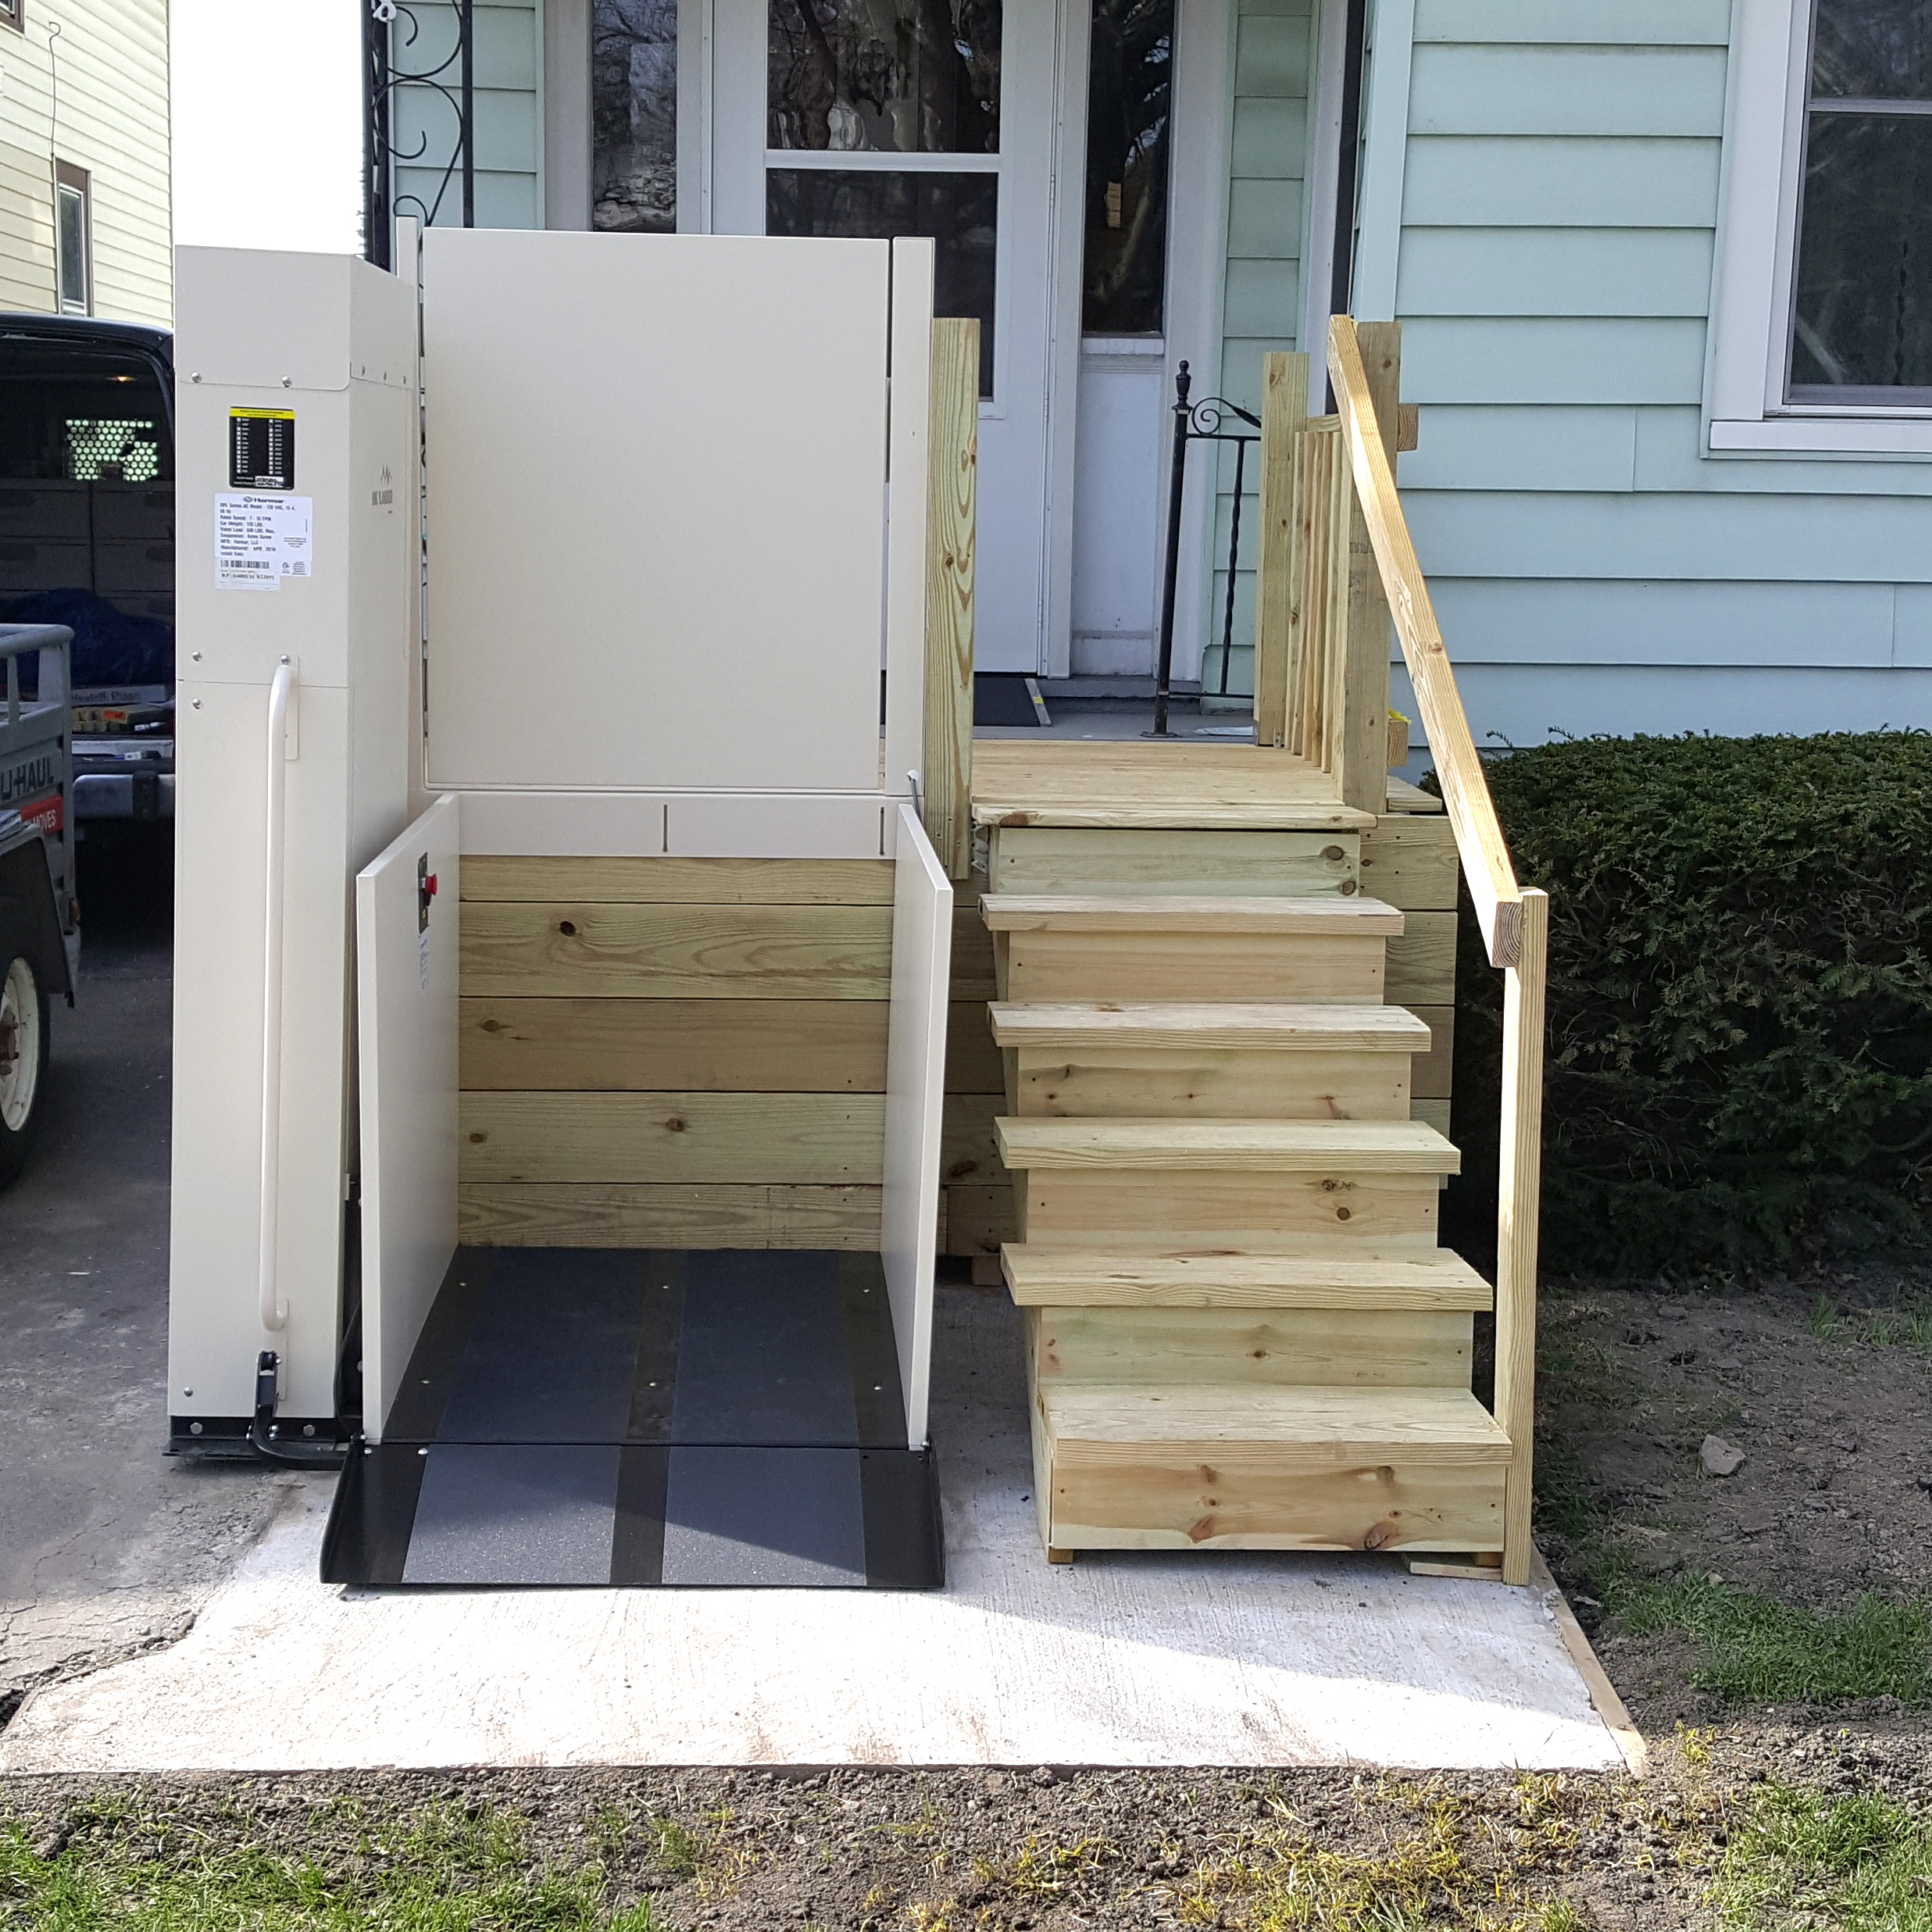 services porch lifts vegas inc accessibility las vertical stairlift lift home bruno platform